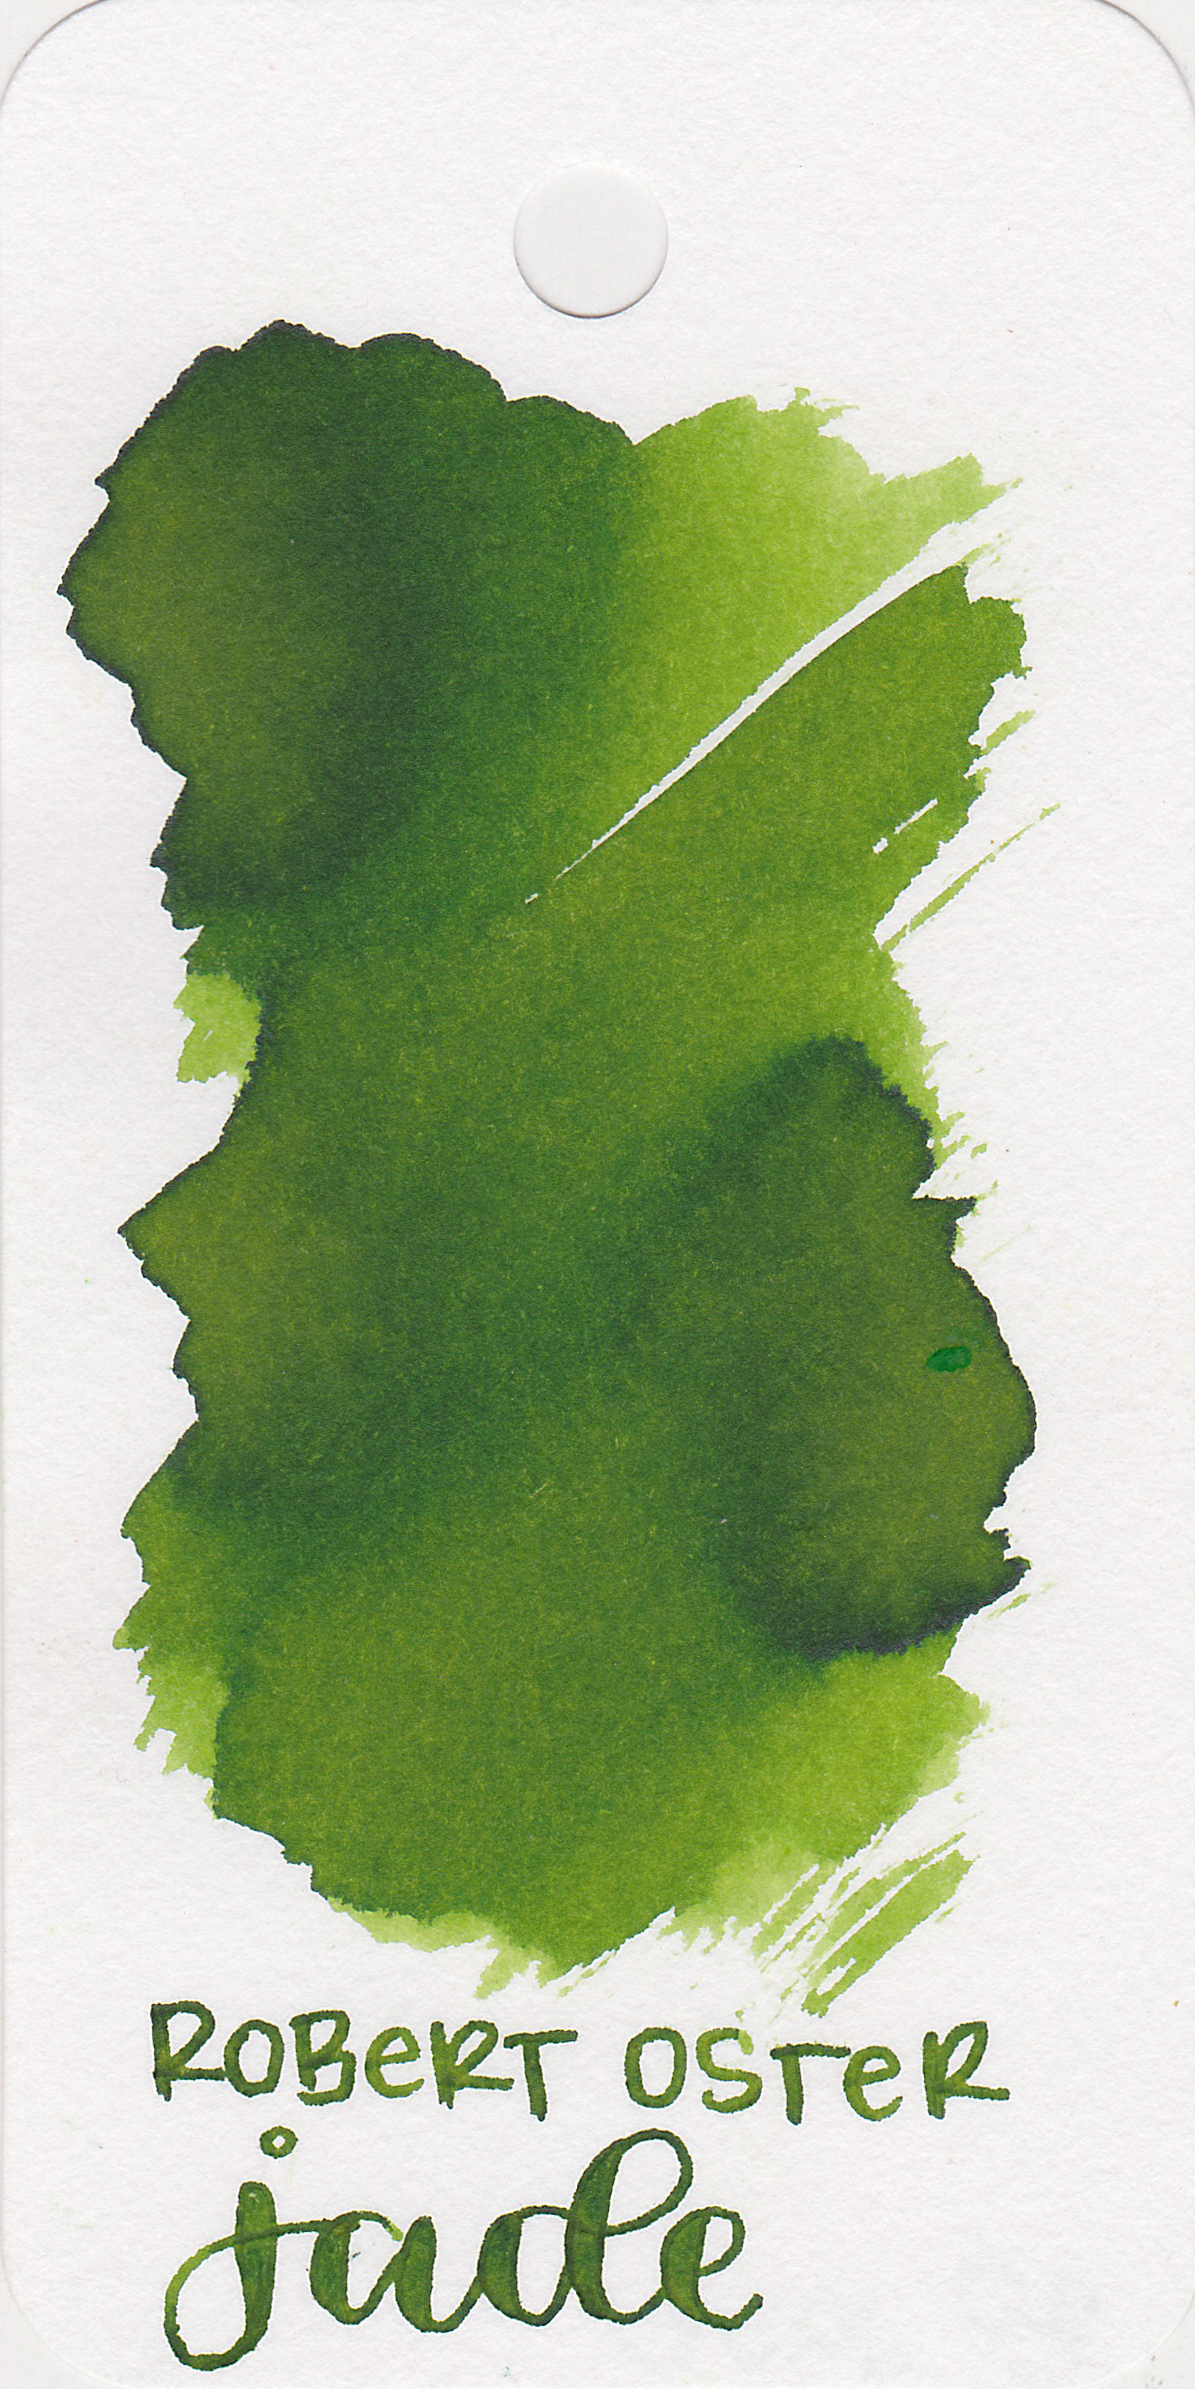 The color: - Jade is a medium green with some lovely shading.